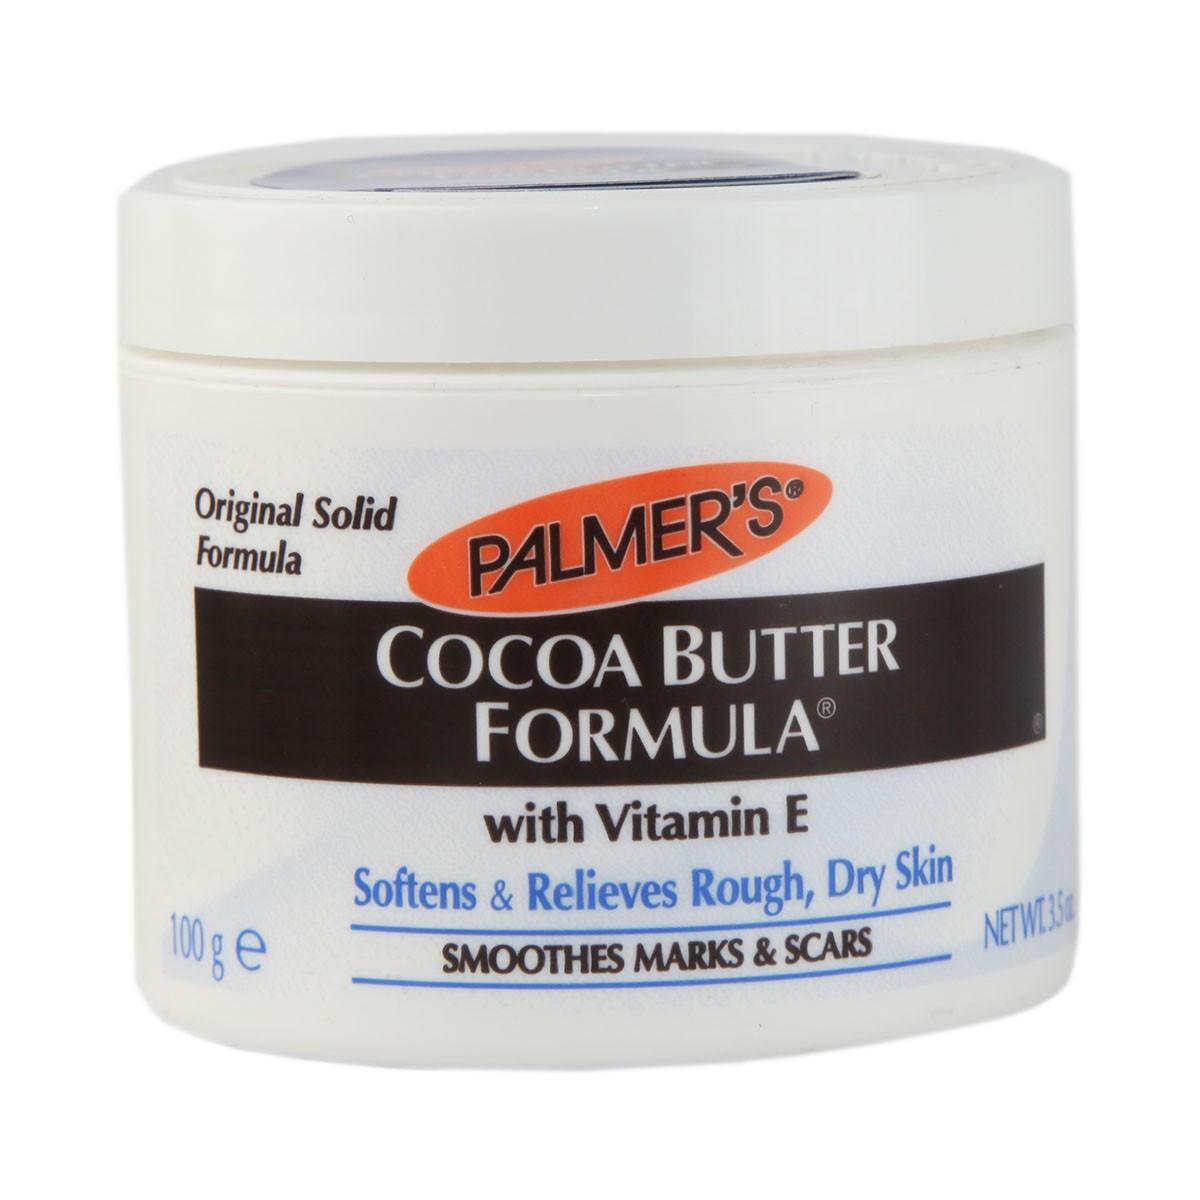 Palmer's Cocoa Butter Formula with Vitamin E Smoothes Marks & Scars